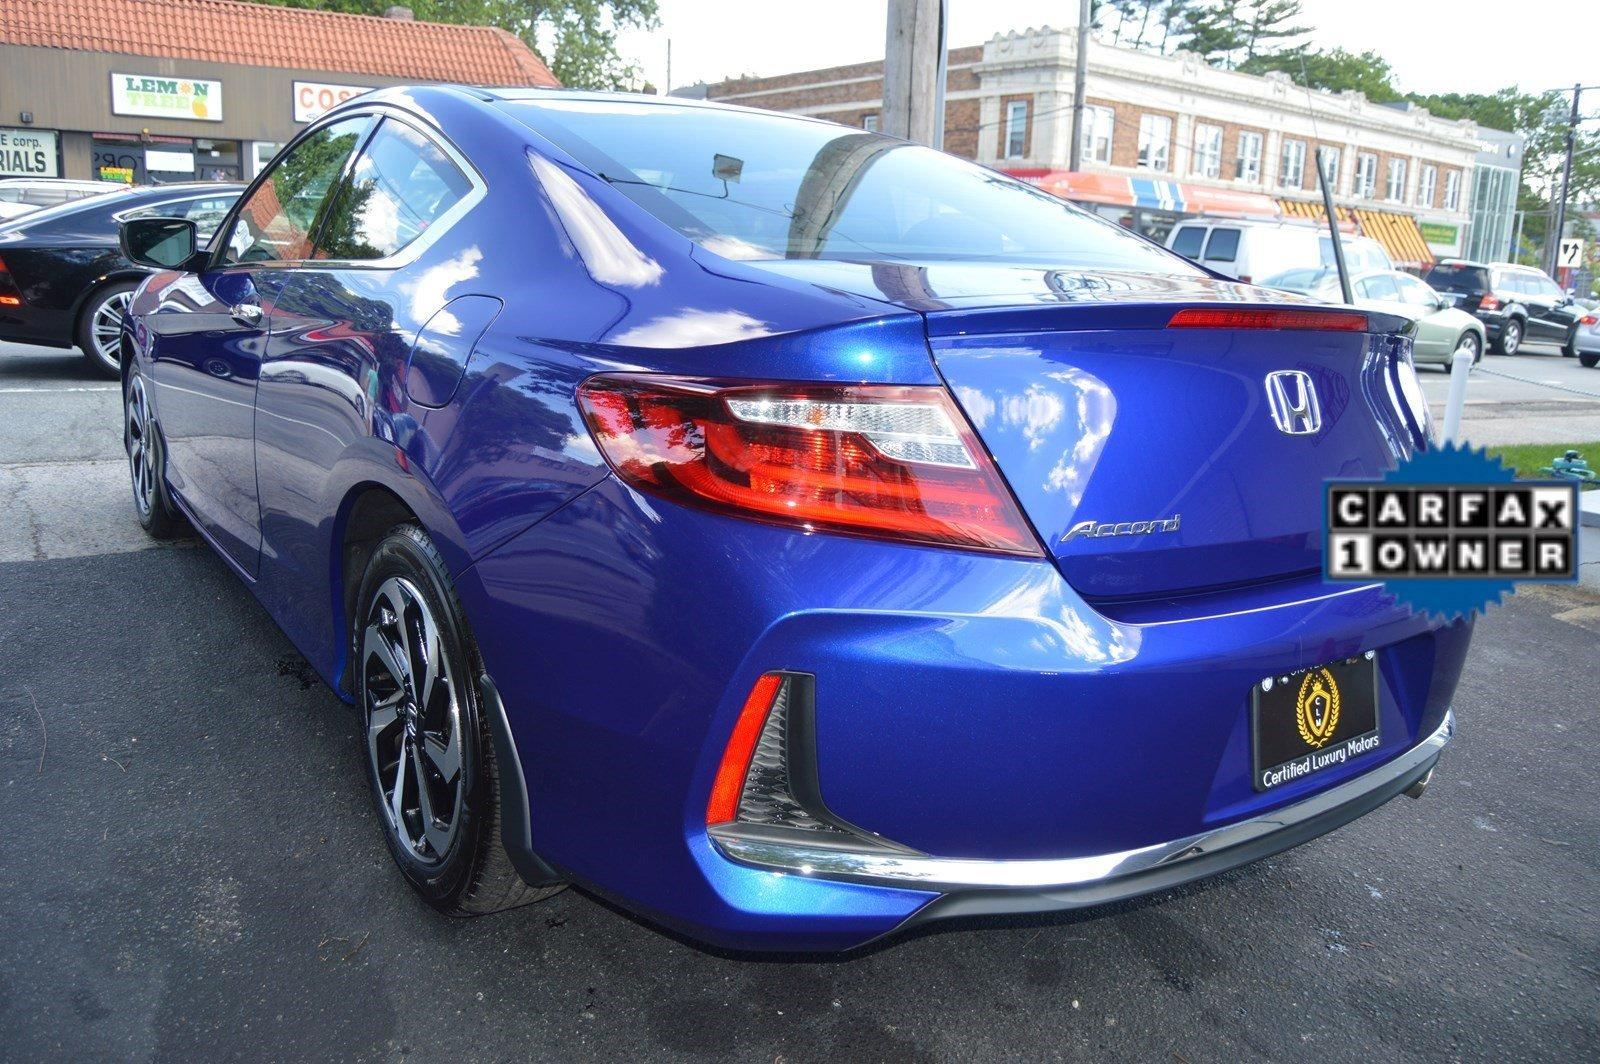 2016 honda accord coupe lx s stock 8066 for sale near for Honda accord coupe for sale